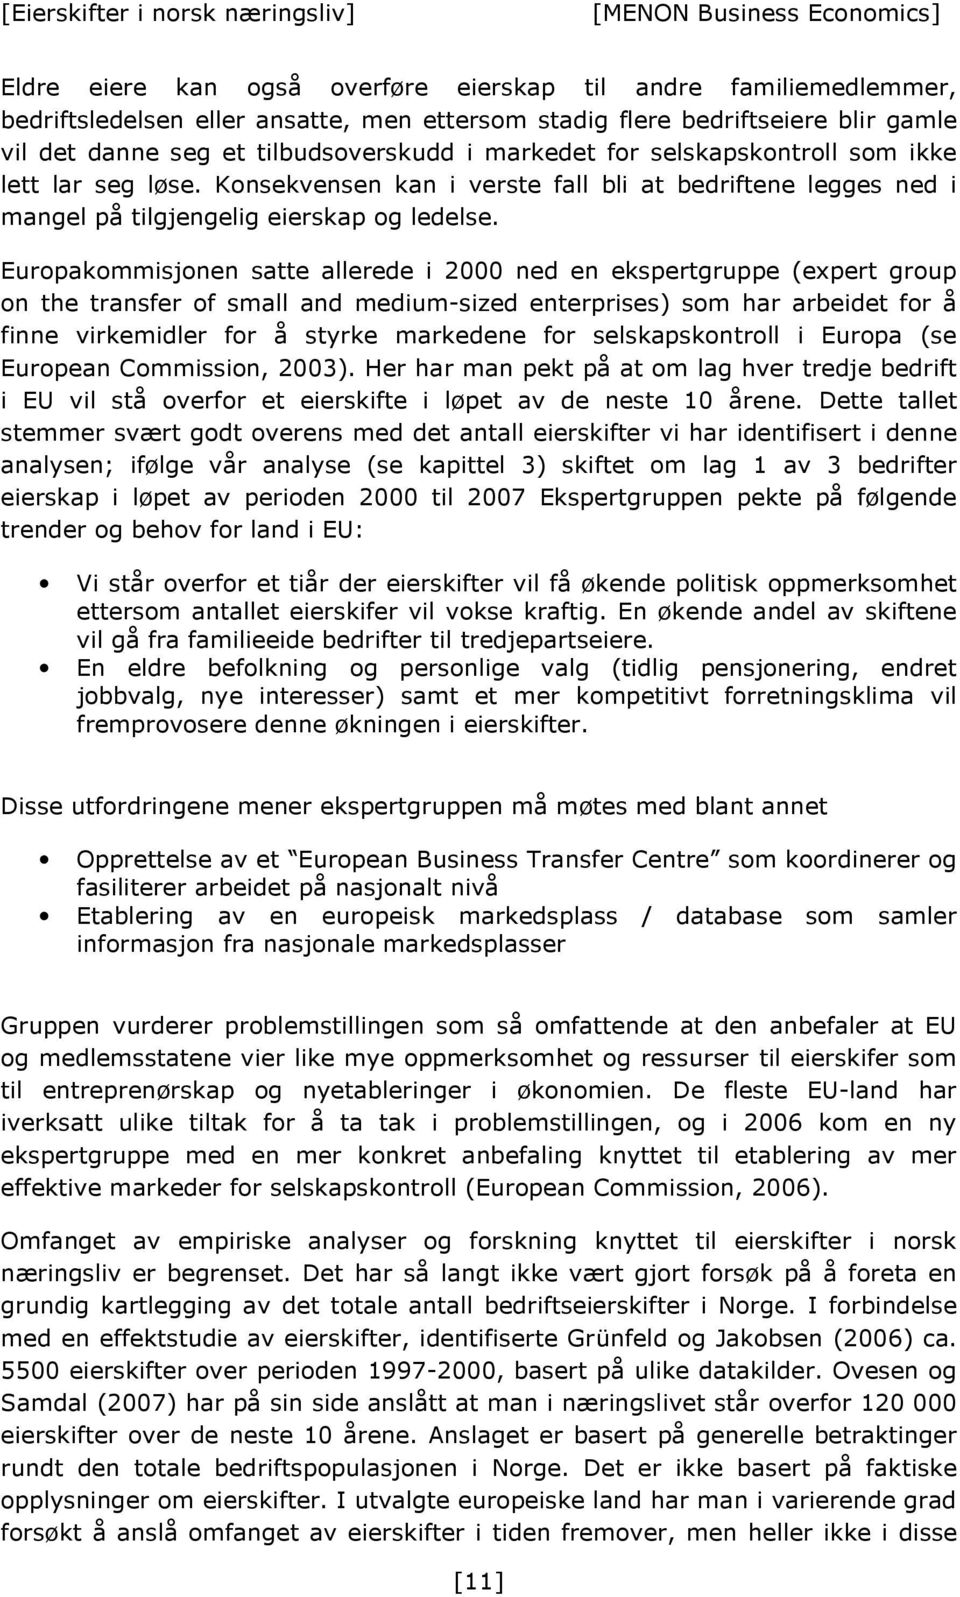 Europakommisjonen satte allerede i 2000 ned en ekspertgruppe (expert group on the transfer of small and medium-sized enterprises) som har arbeidet for å finne virkemidler for å styrke markedene for